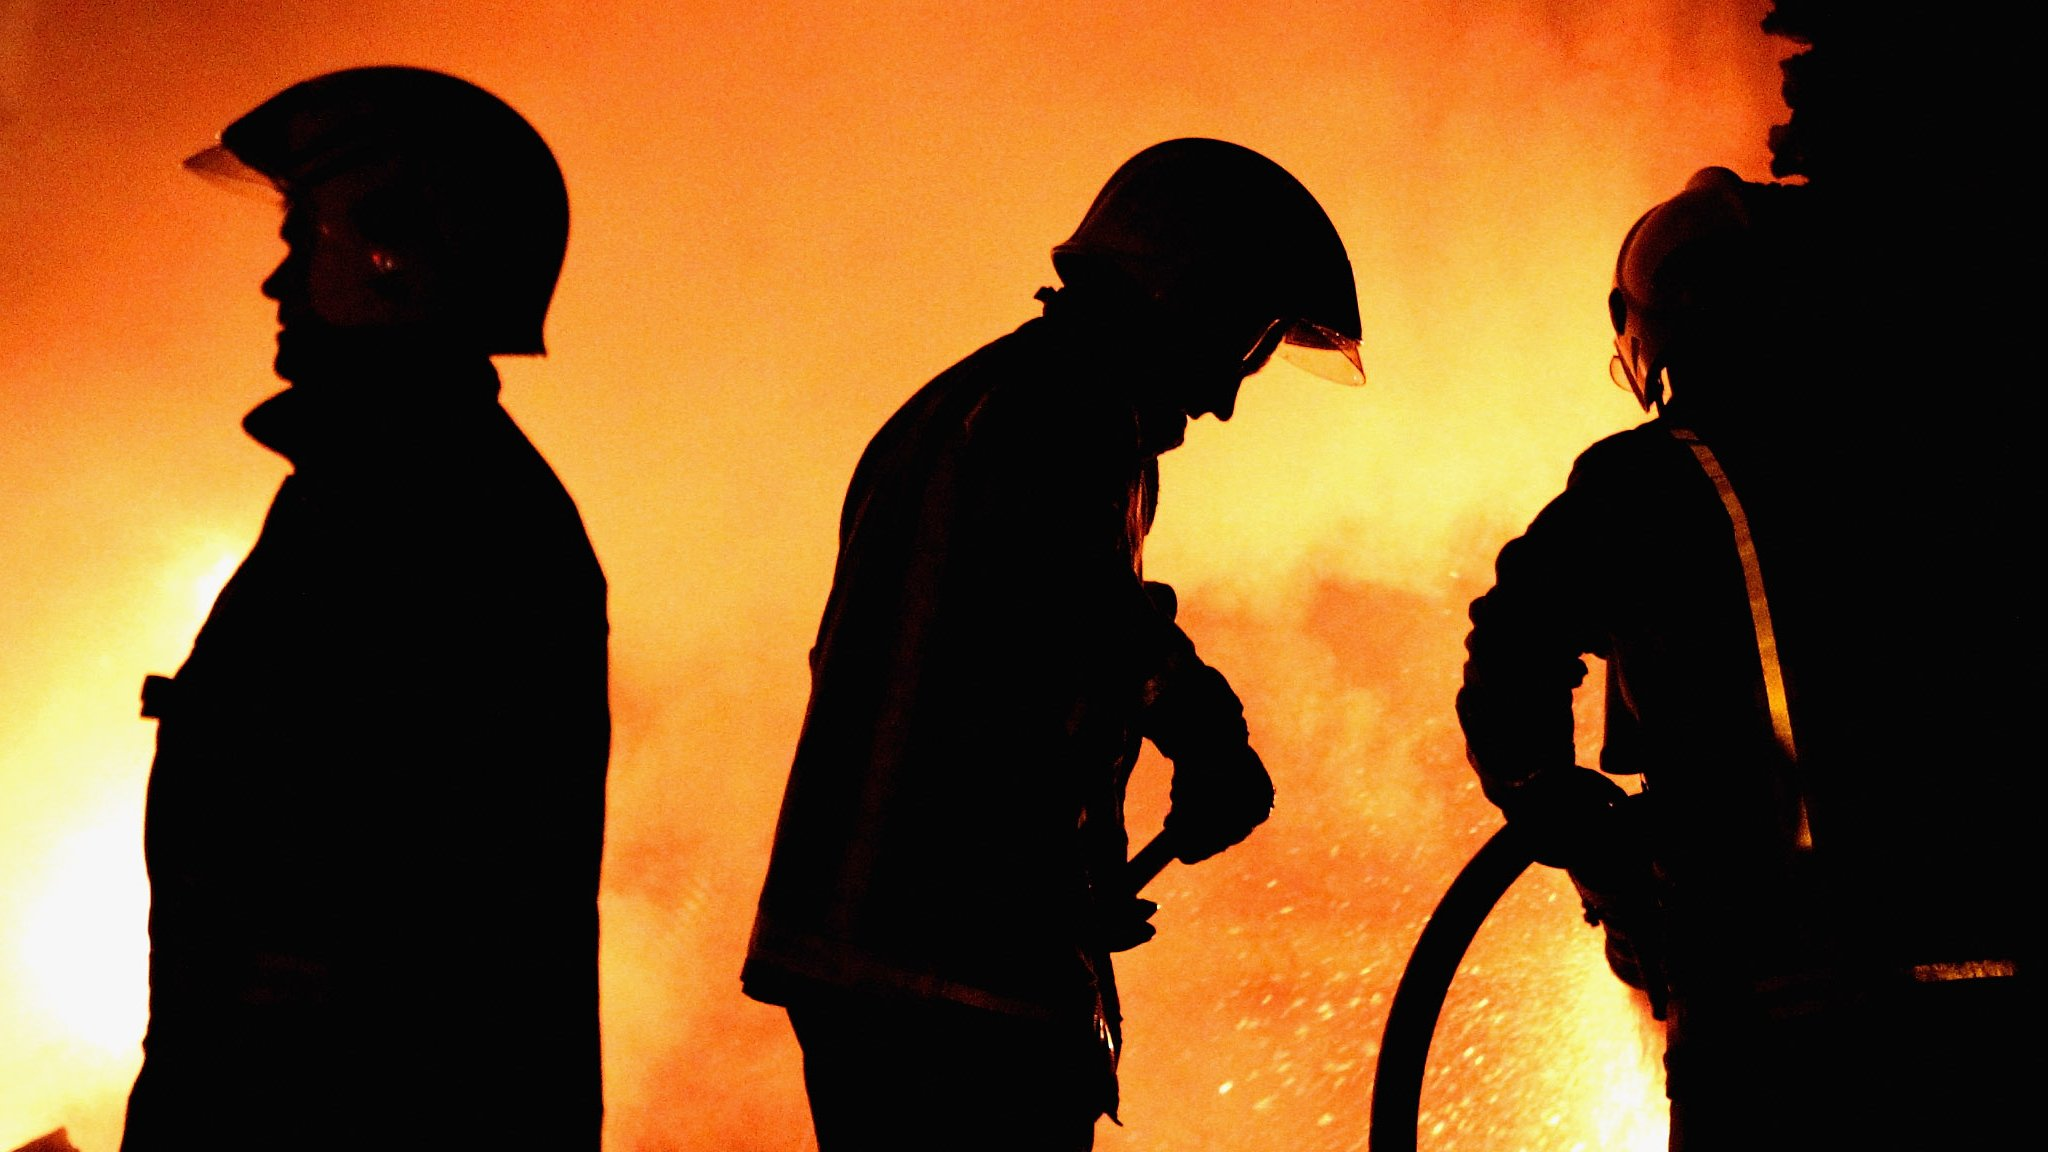 Firefighter's on call time counts as work, ECJ rules